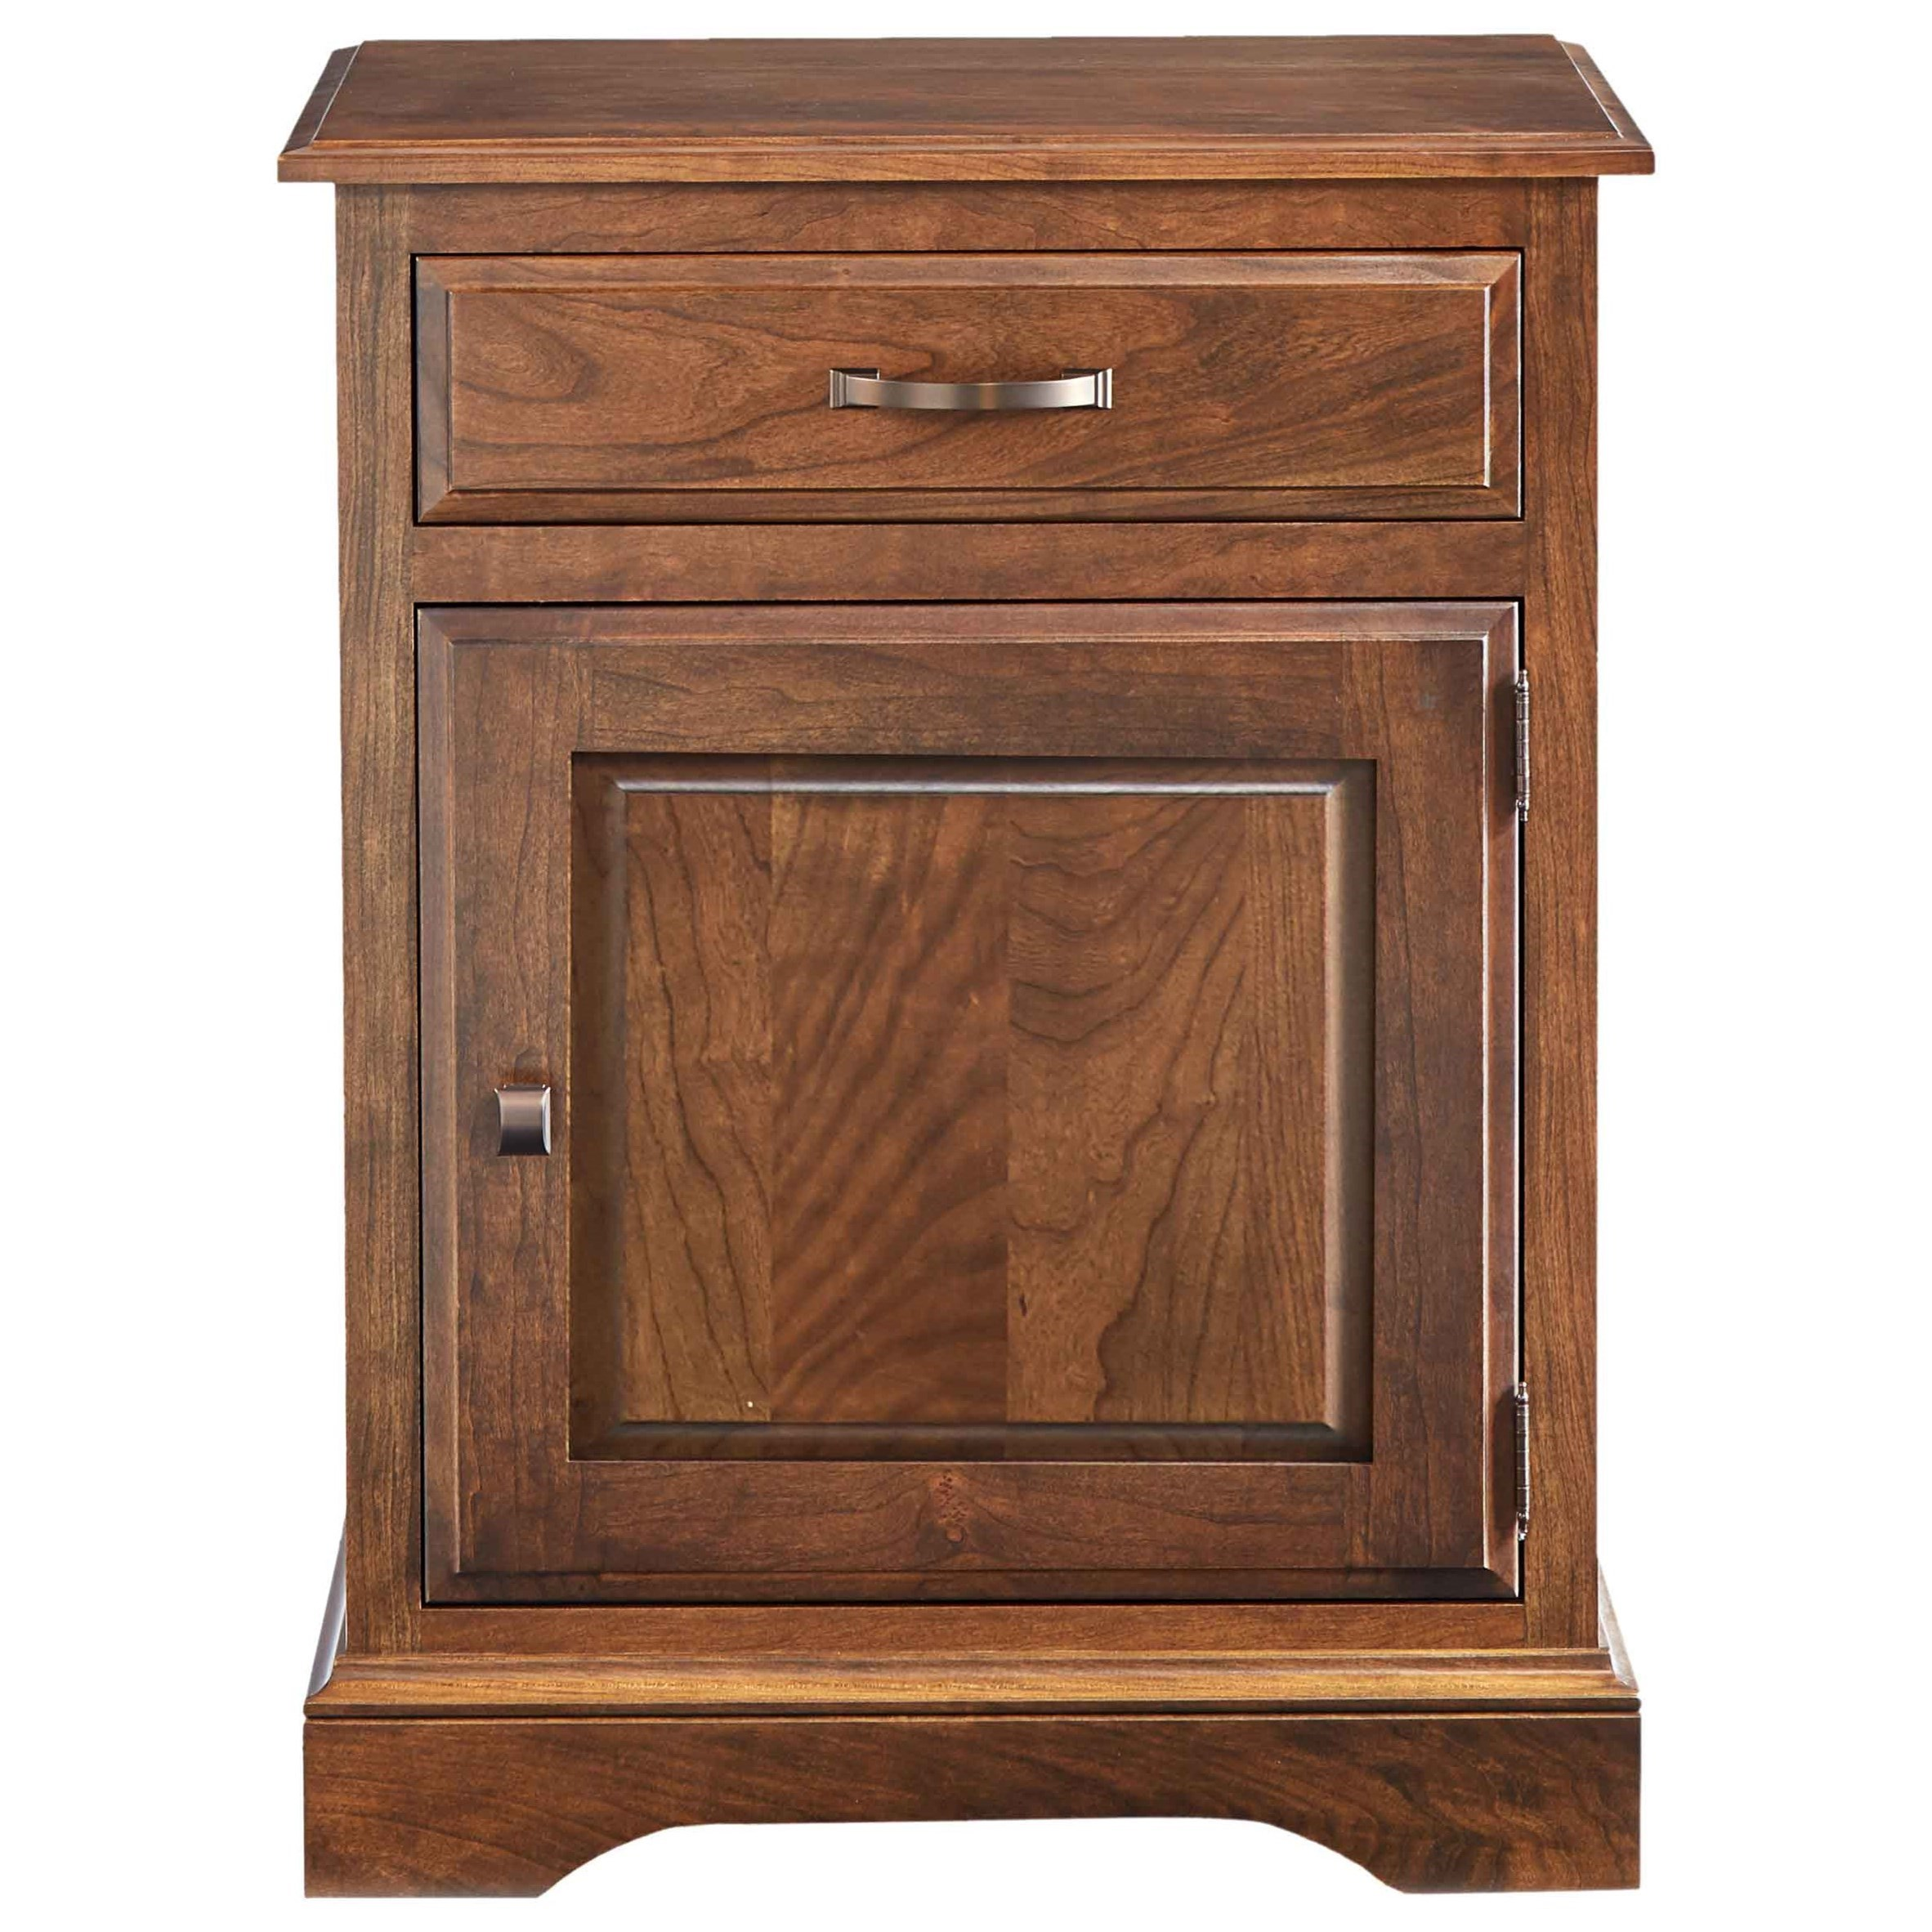 Carriage Nightstand by Daniel's Amish at Saugerties Furniture Mart